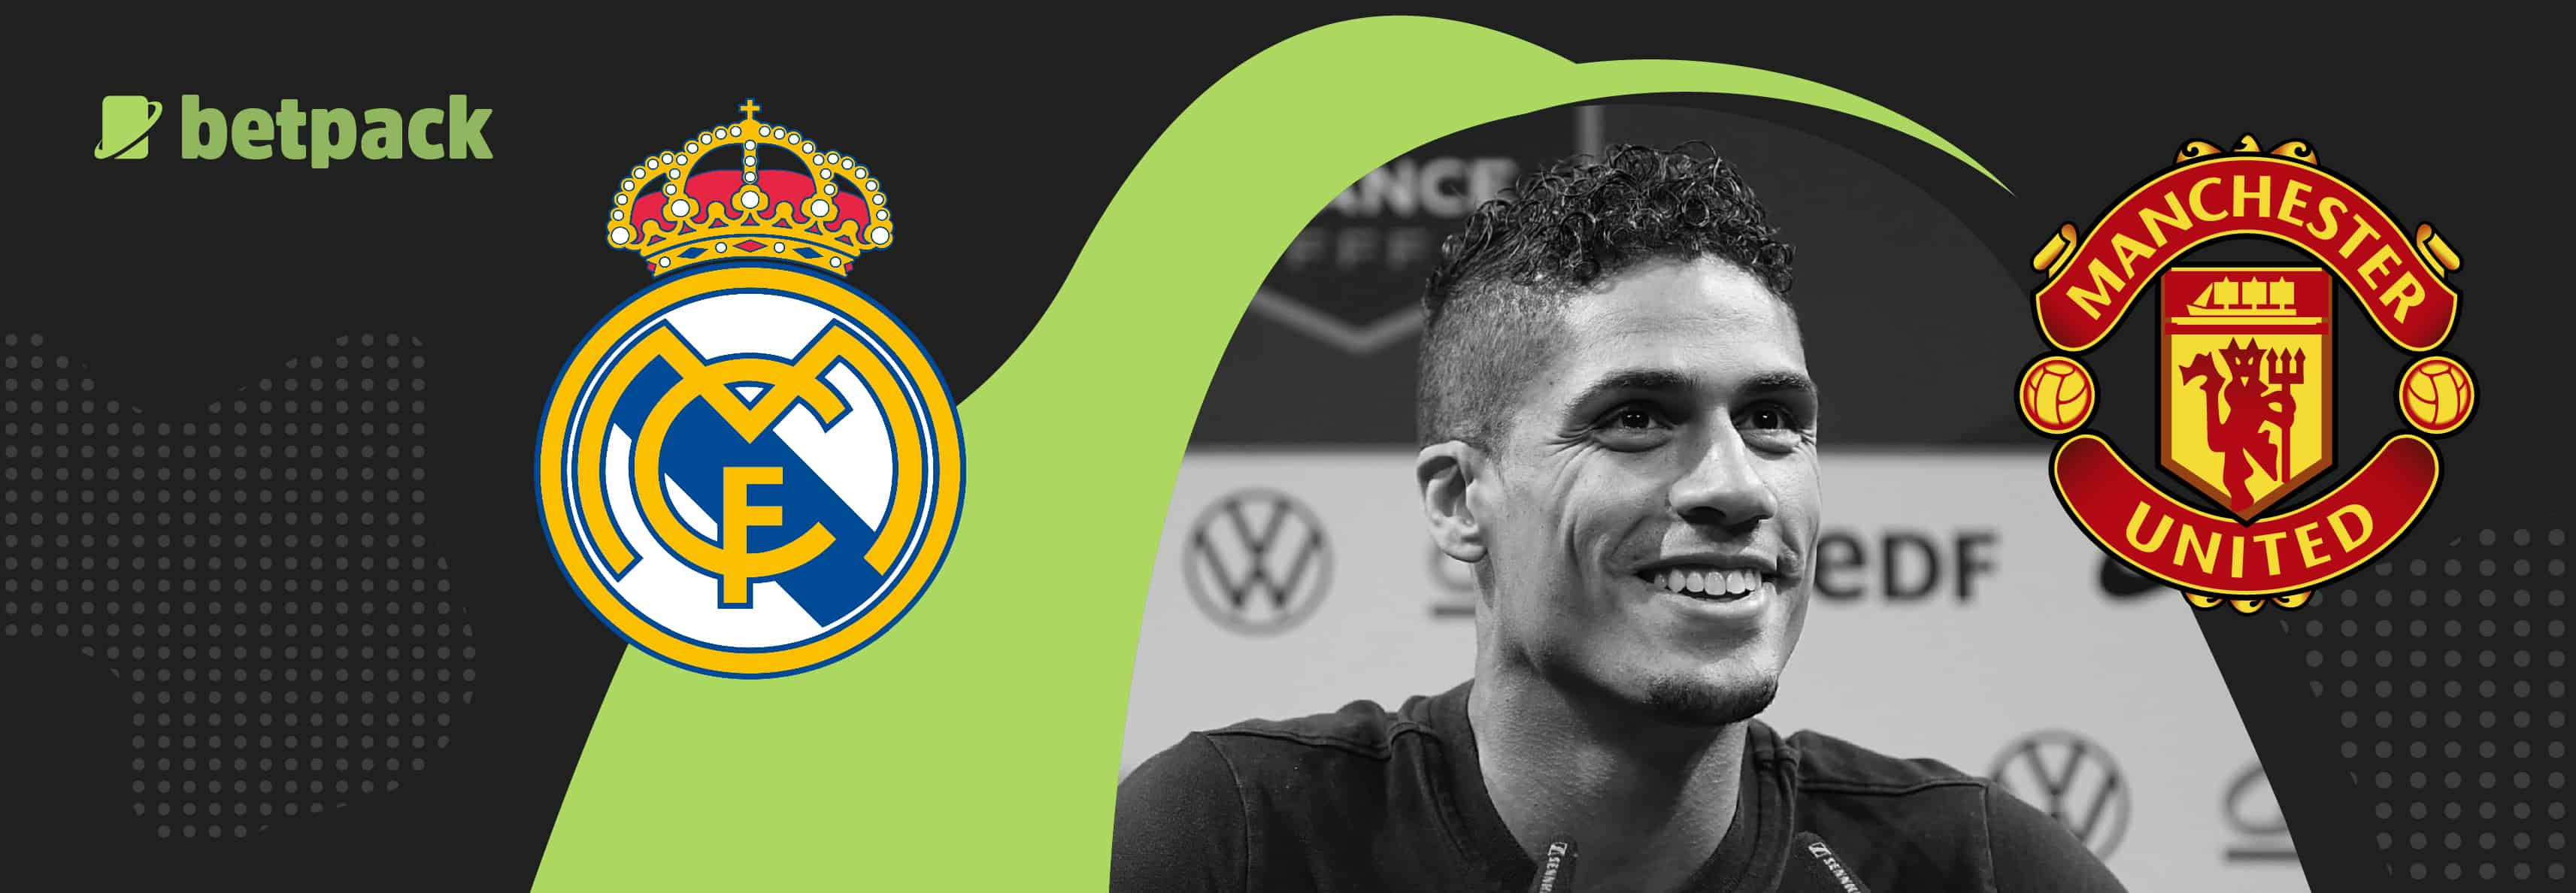 Manchester United Signs Raphael Varane from Real Madrid